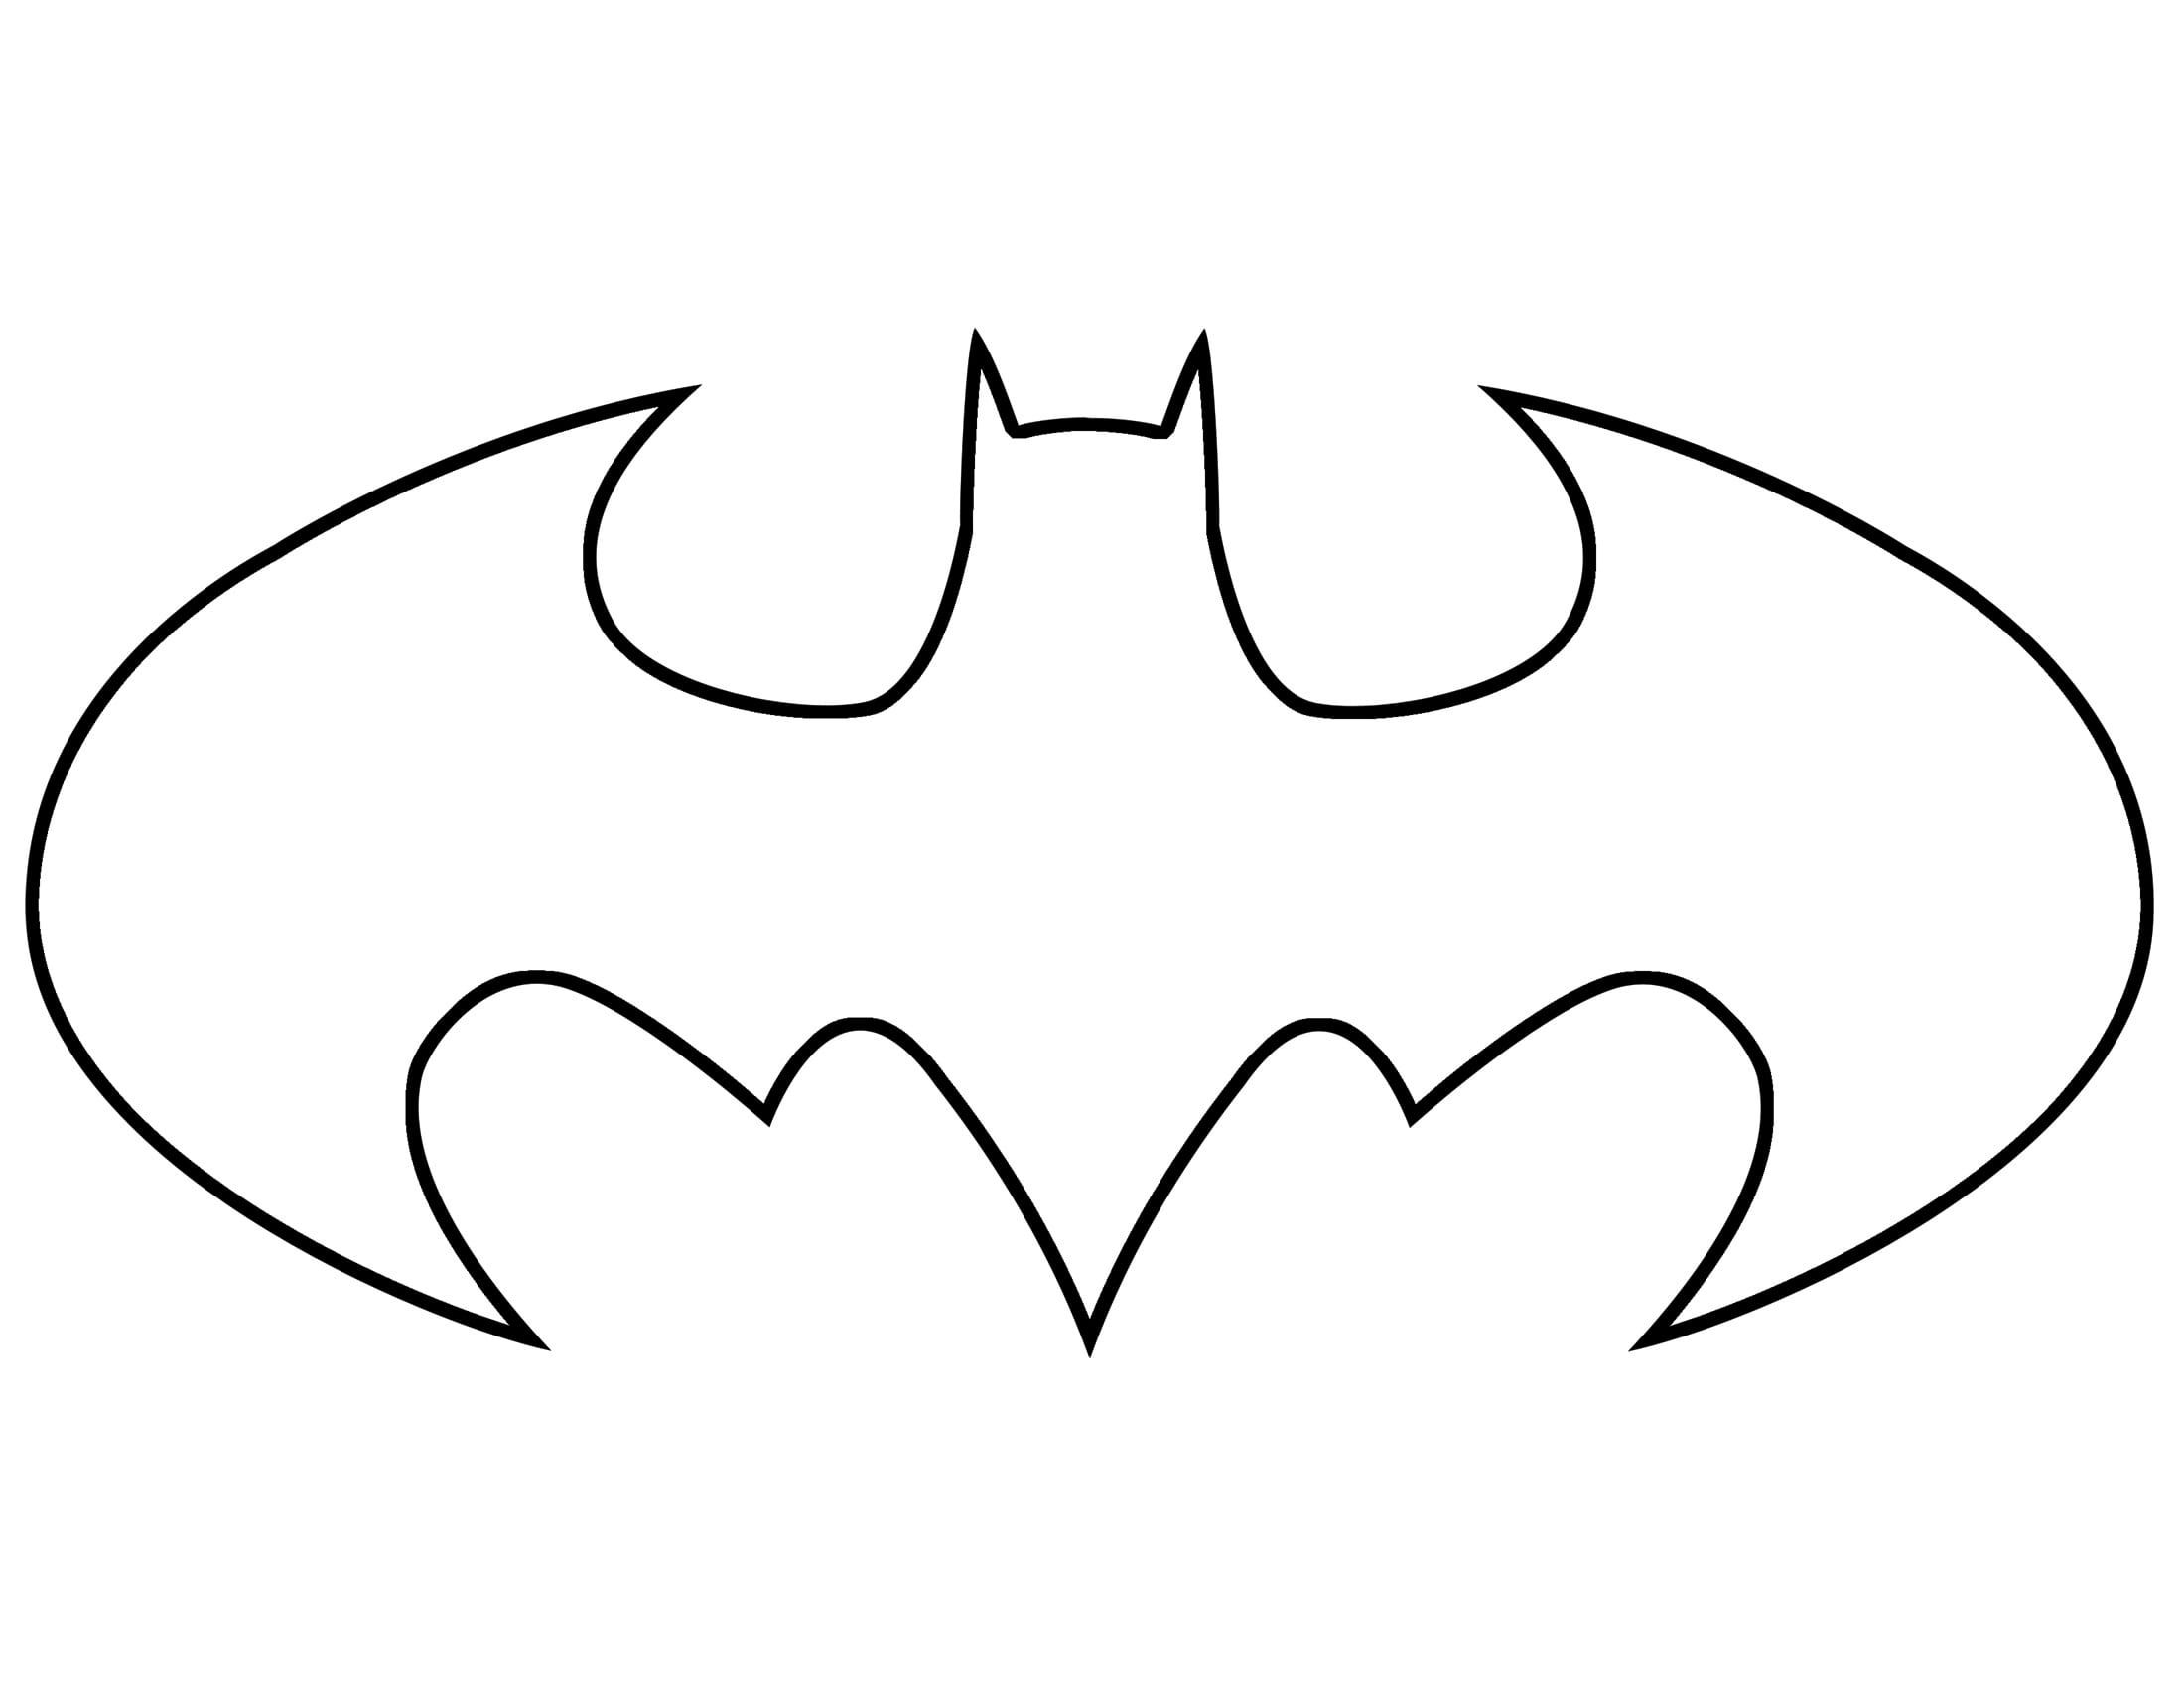 Batman Symbol Outline Batman Pumpkin Stencil Batman Coloring Pages Batman Pumpkin